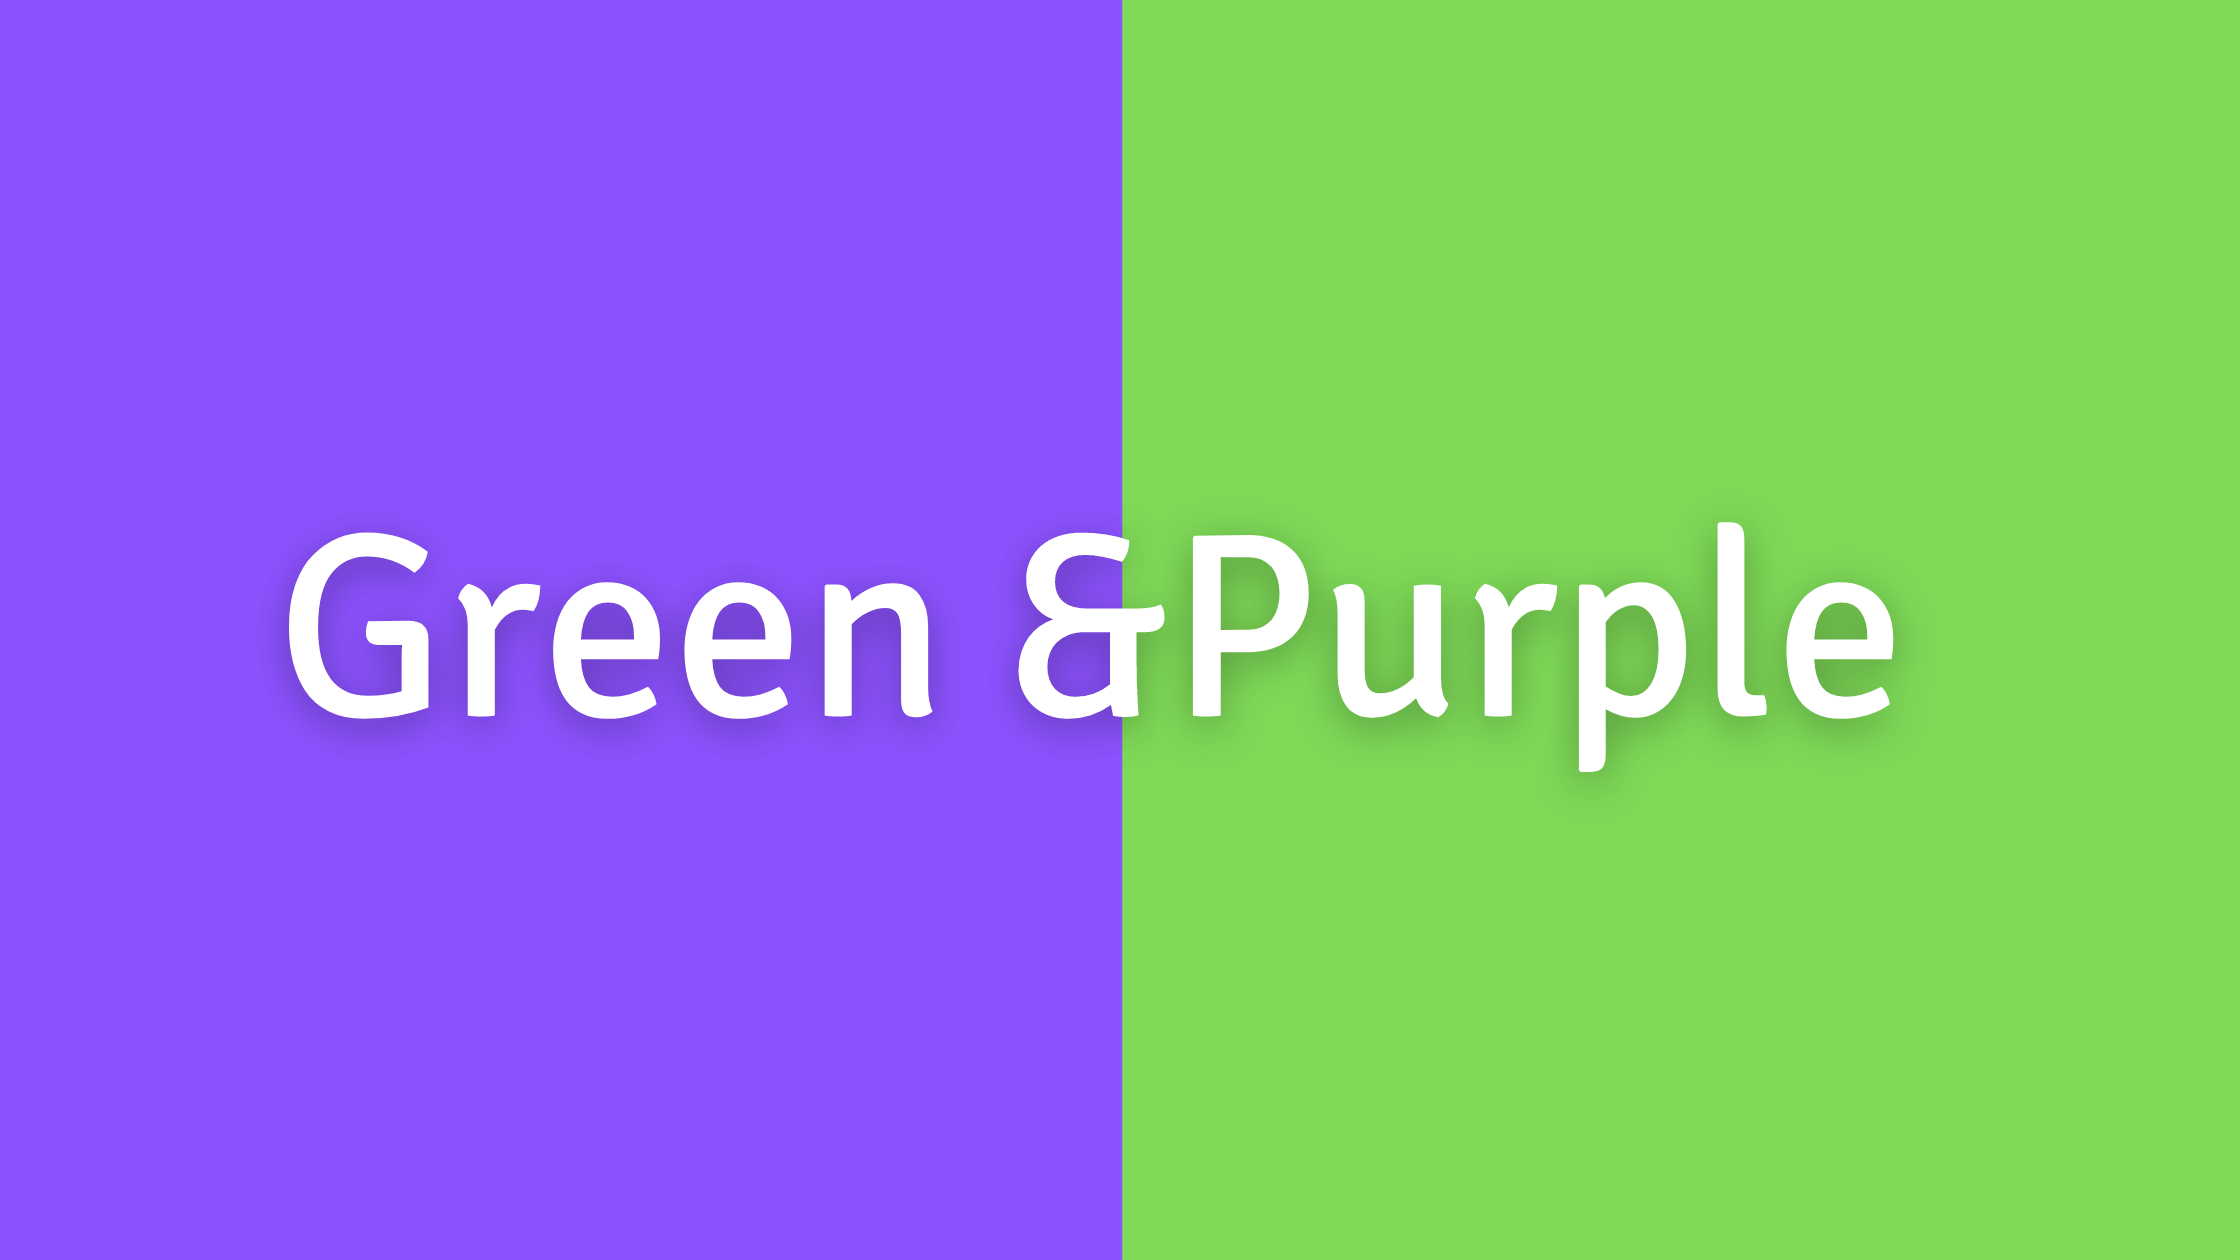 Green, Yellow, and Orange Color Combos to Avoid: Green and Purple